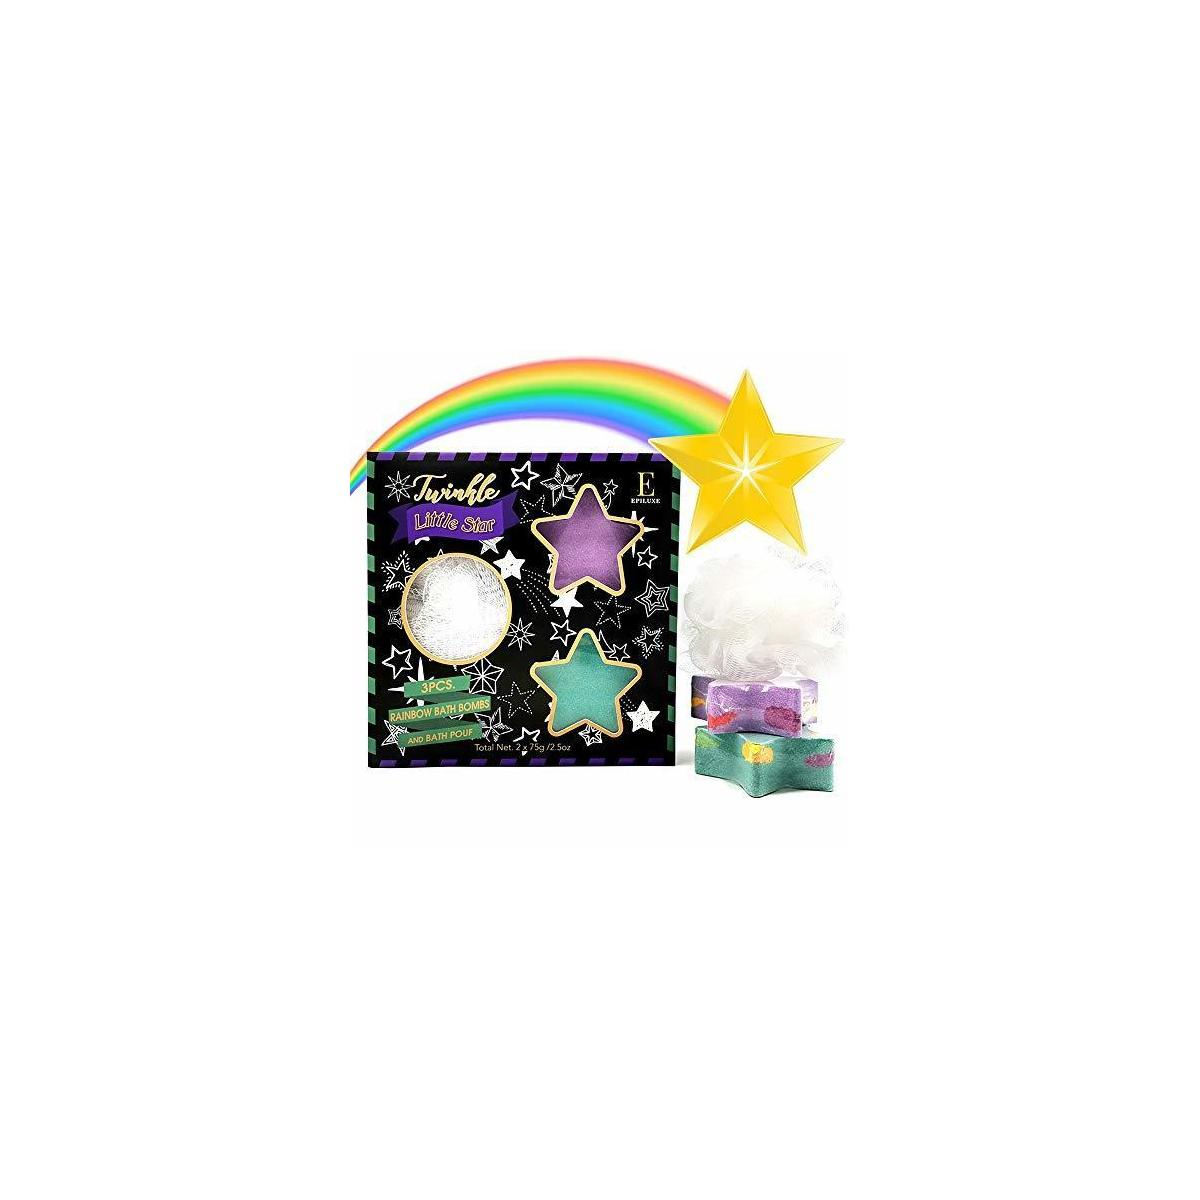 Shooting Star Rainbow Bath Bombs - Gift Set - Surprise Rainbow Colors, Organic Essential Oil & Shea Butter, Bubble Bomb Spa Skin Care Gifts Ideas, Kids Girls Boys Women Mom Teens Toddler Birthday